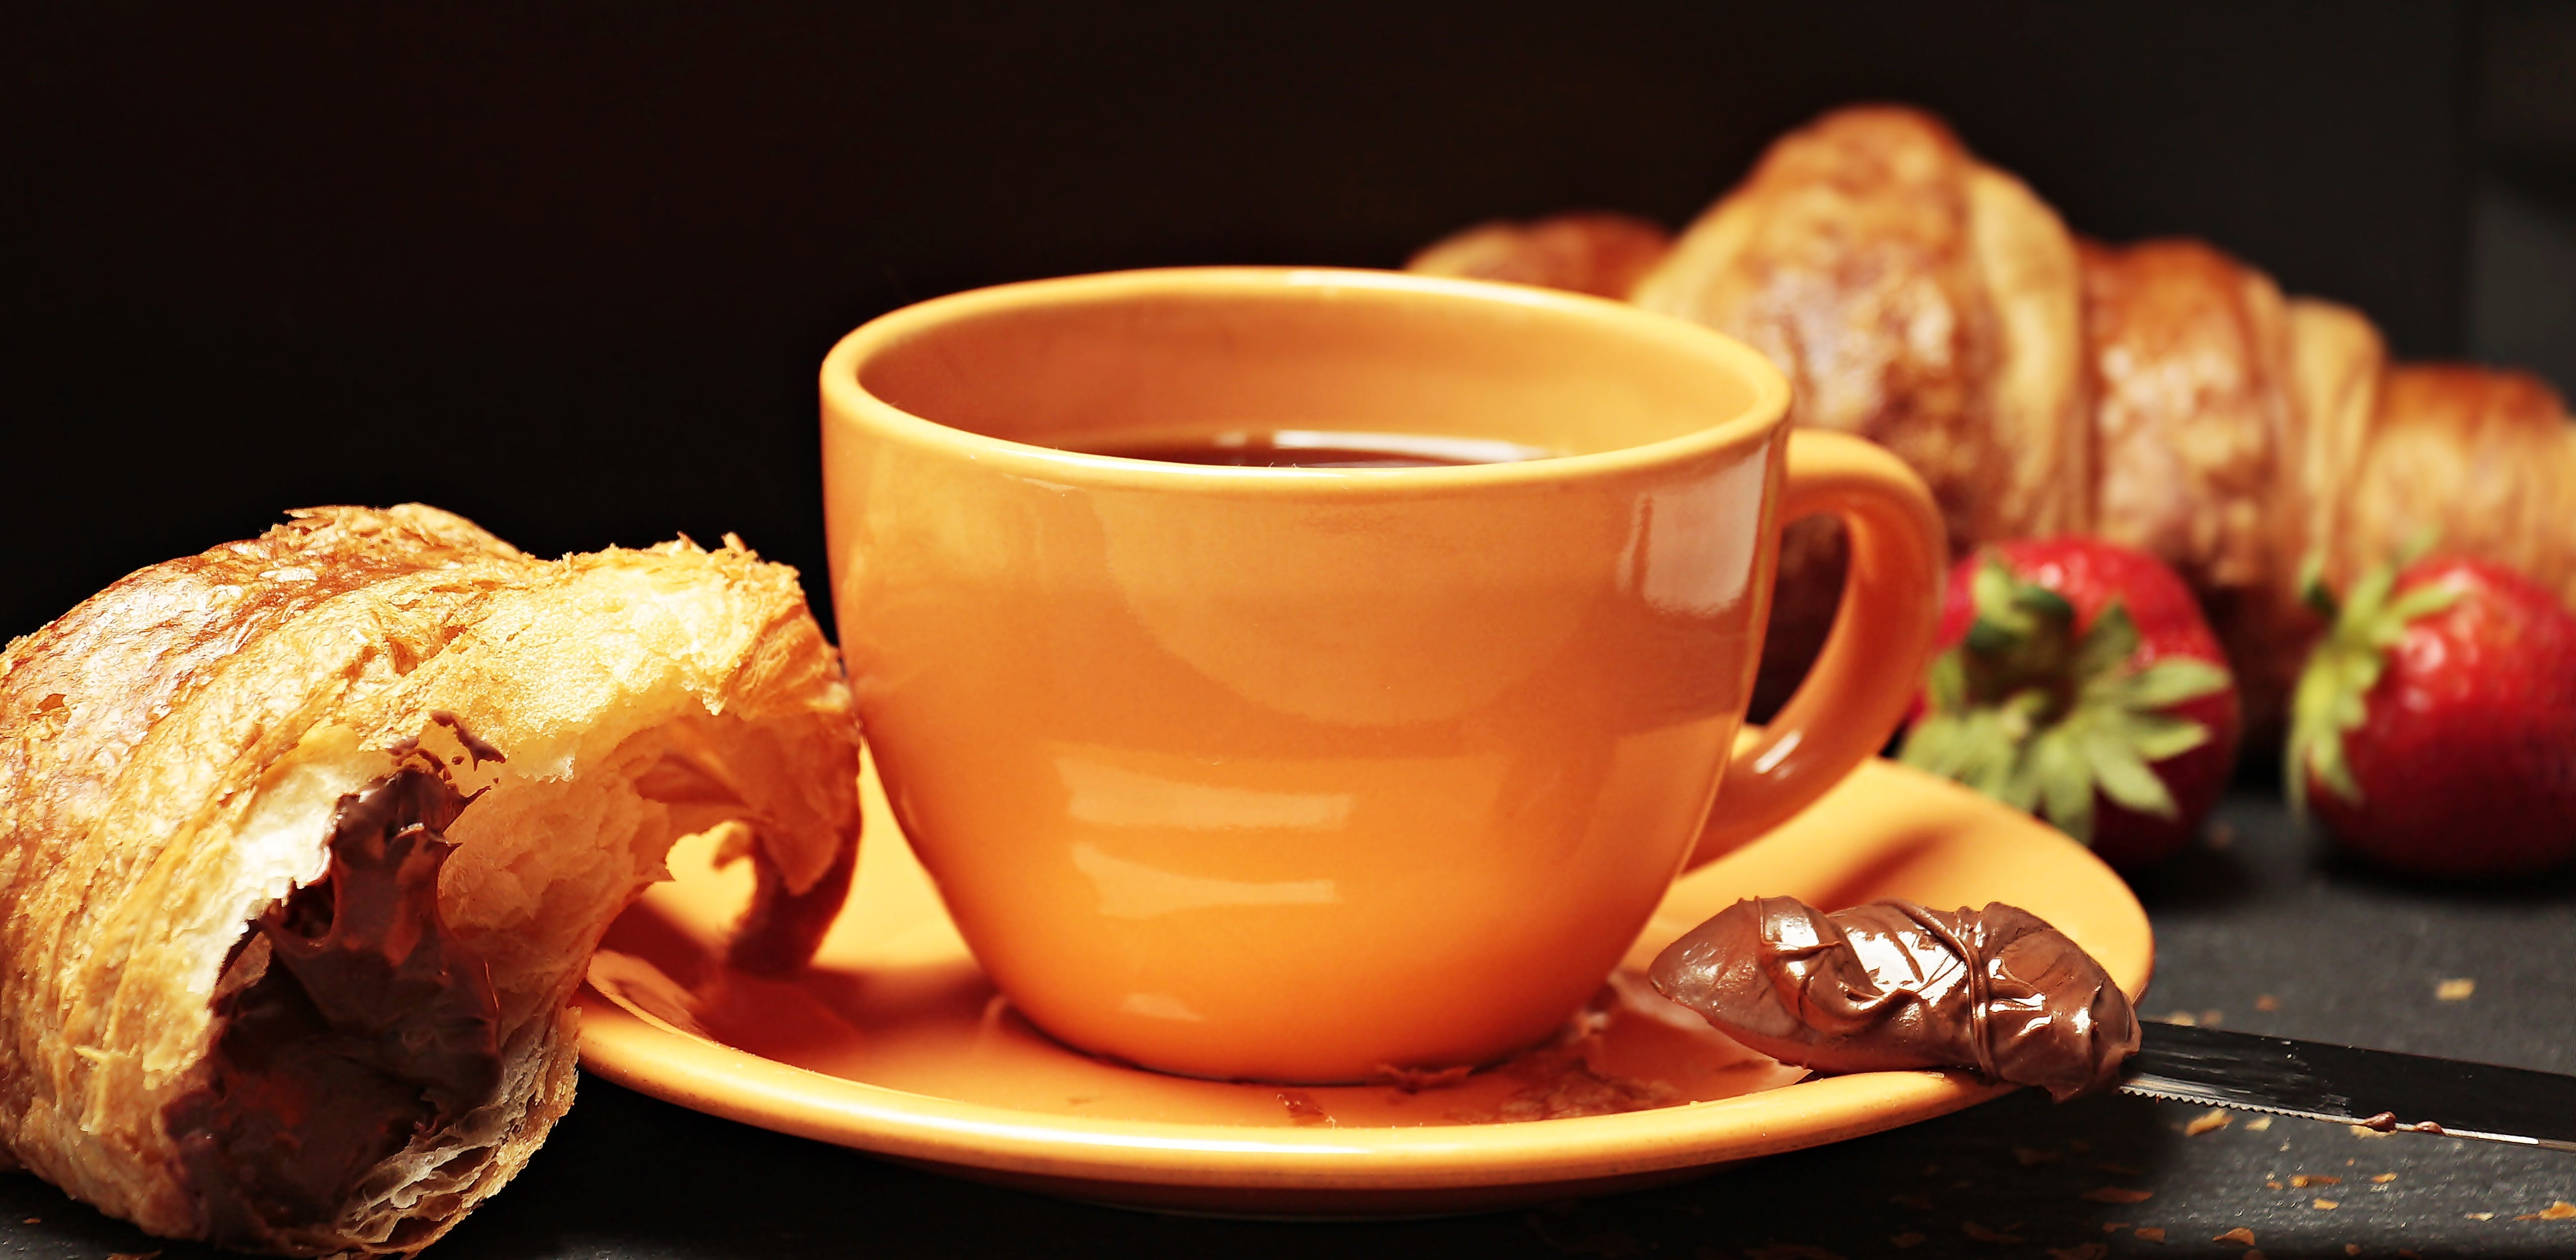 Croissant Near Orange Coffee Cup With Saucer